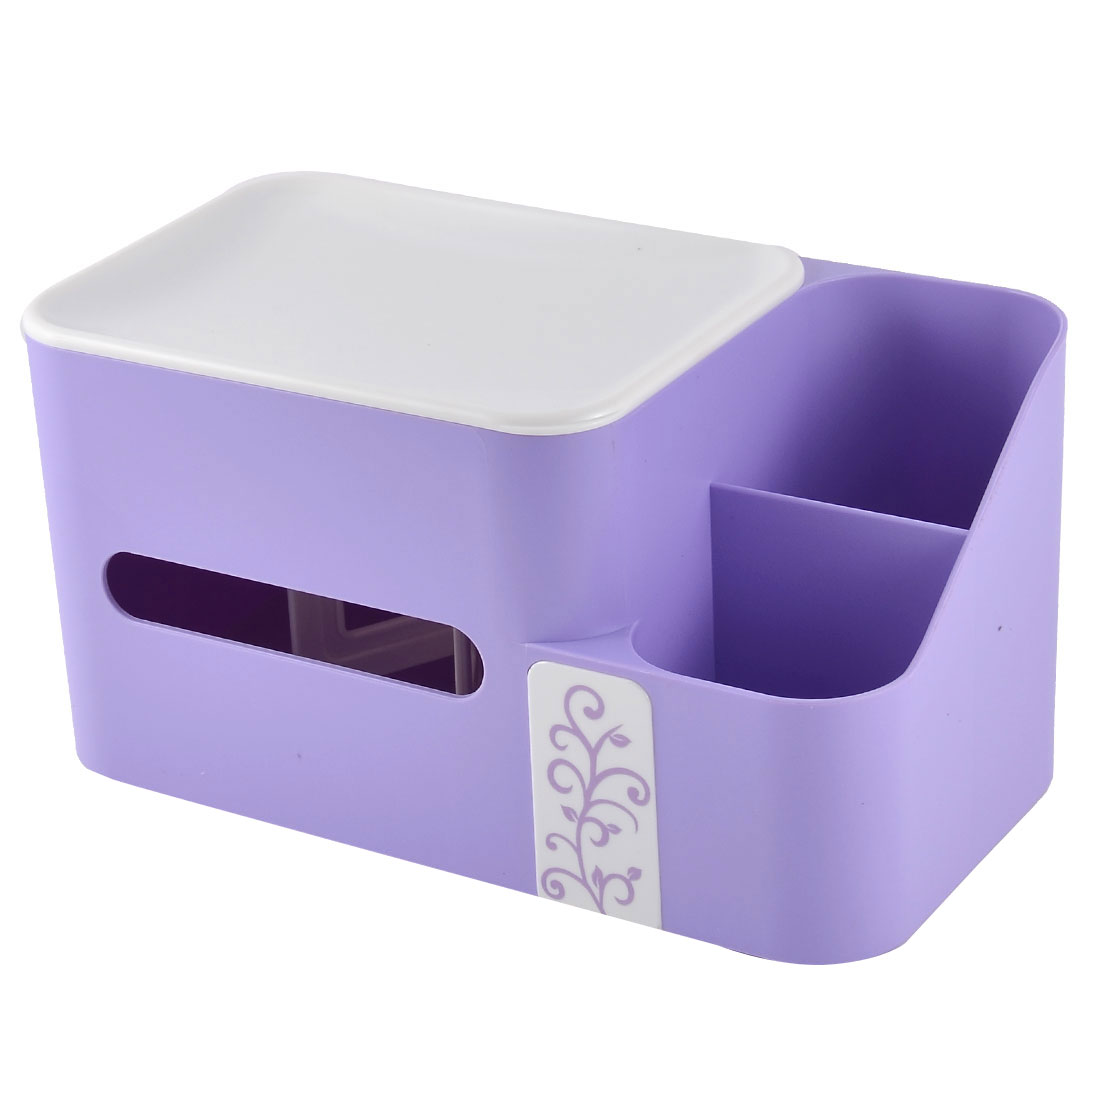 Home Office Desk Plastic Special Spring Design Pen Tissue Holder Purple w Storage Box Case